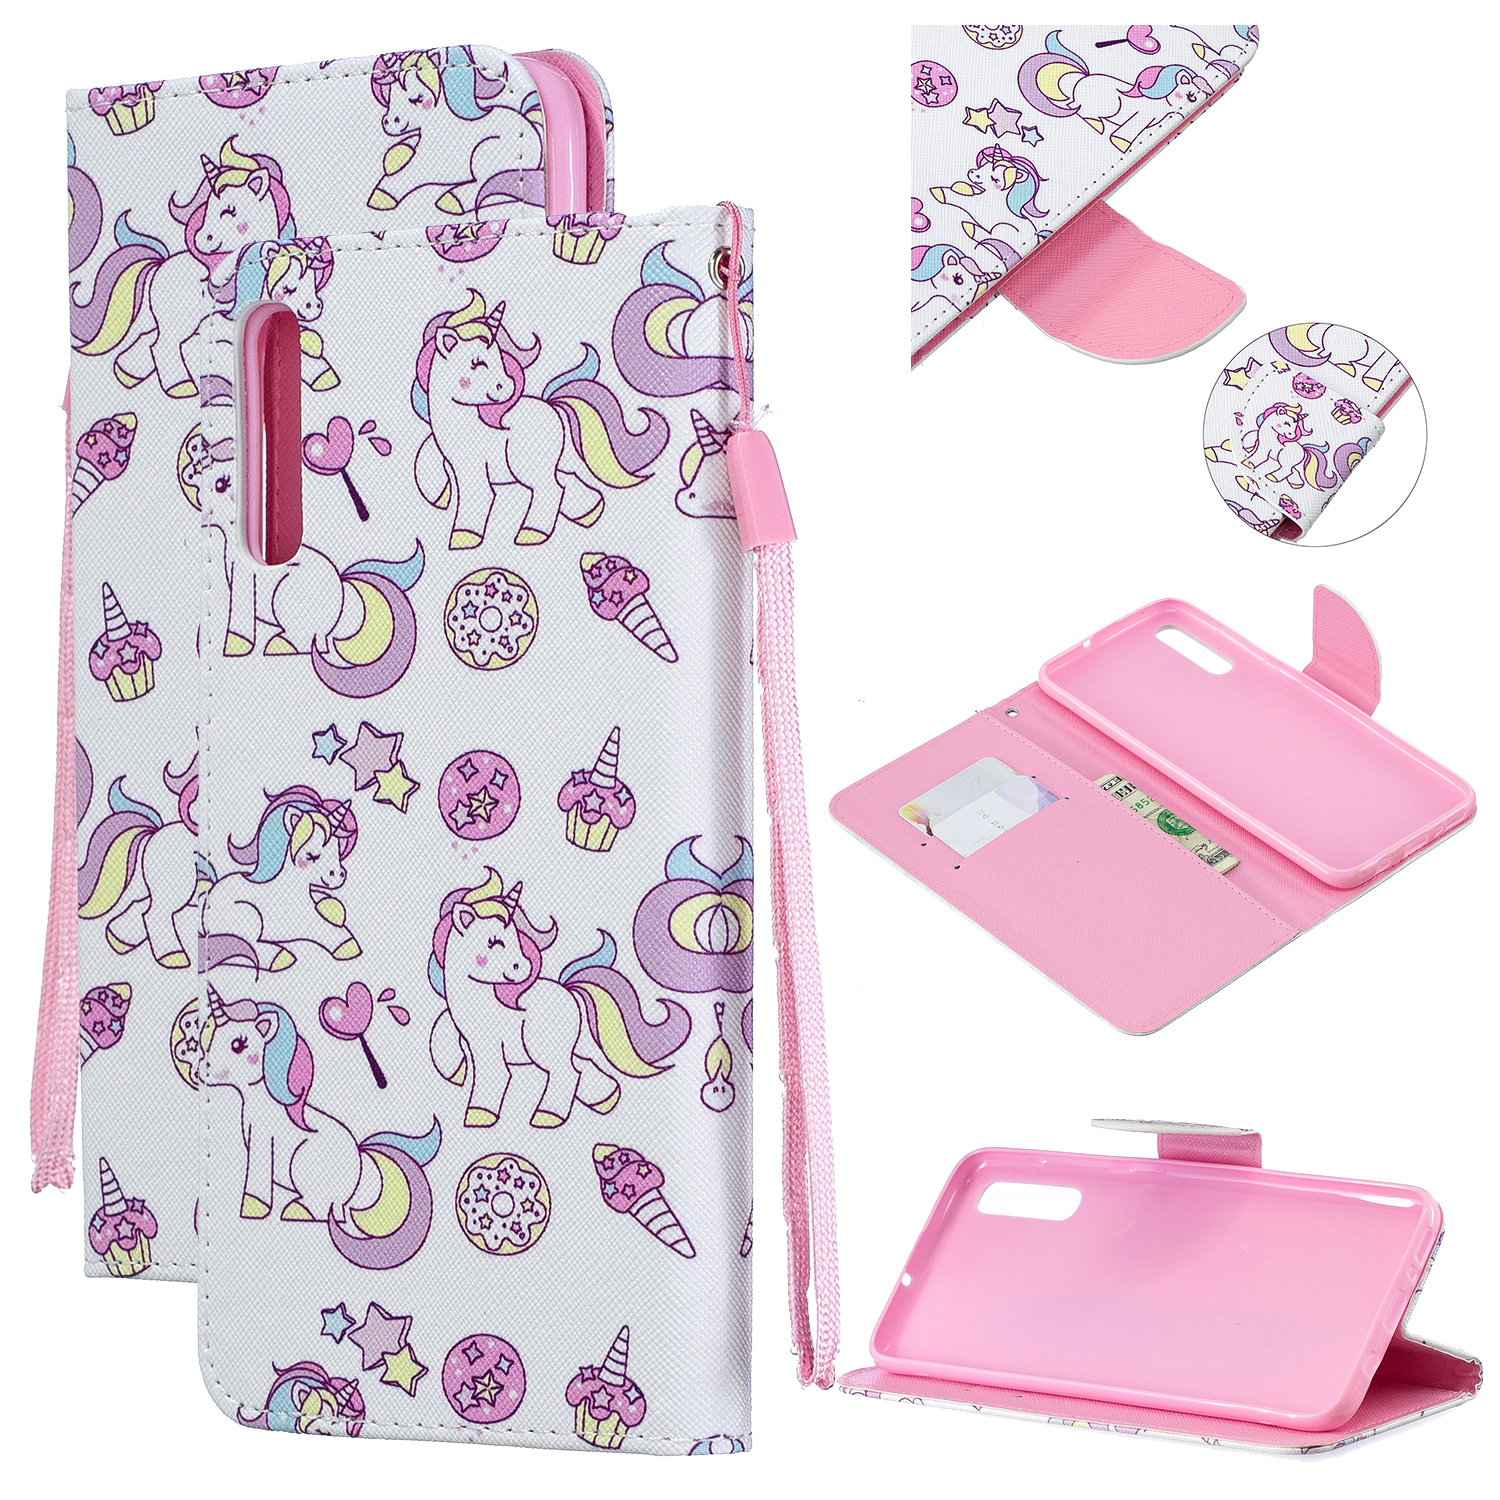 For Samsung A50/A70 Smartphone Case Overall Protective Phone Shell Lovely PU Leather Cellphone Cover with Card Slots  Ice cream unicorn